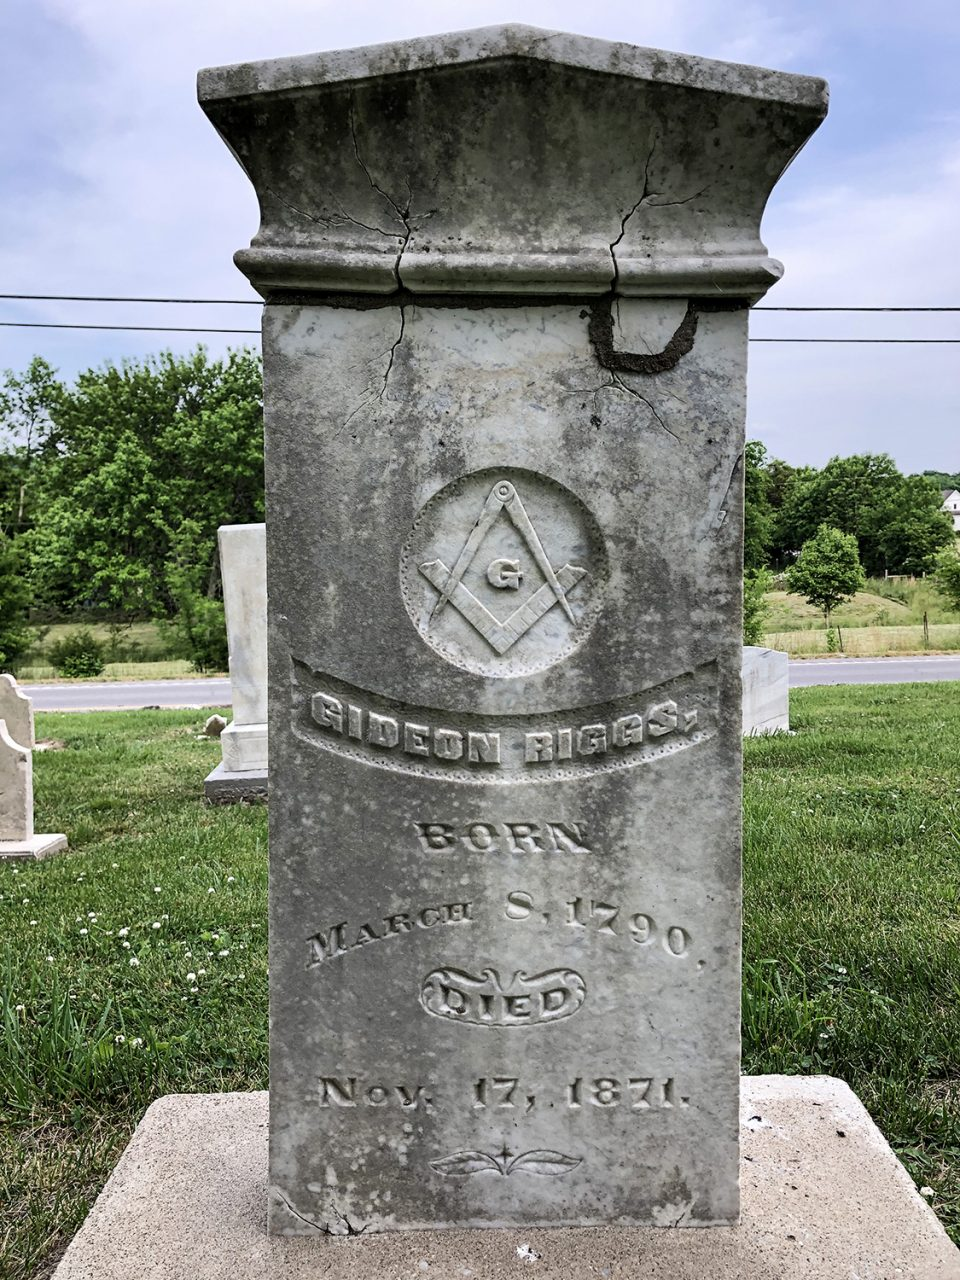 Tombstone for Gideon Riggs, former postmaster of the community as well as patriarch and namesake of the crossroads and the cemetery, buried 1871.